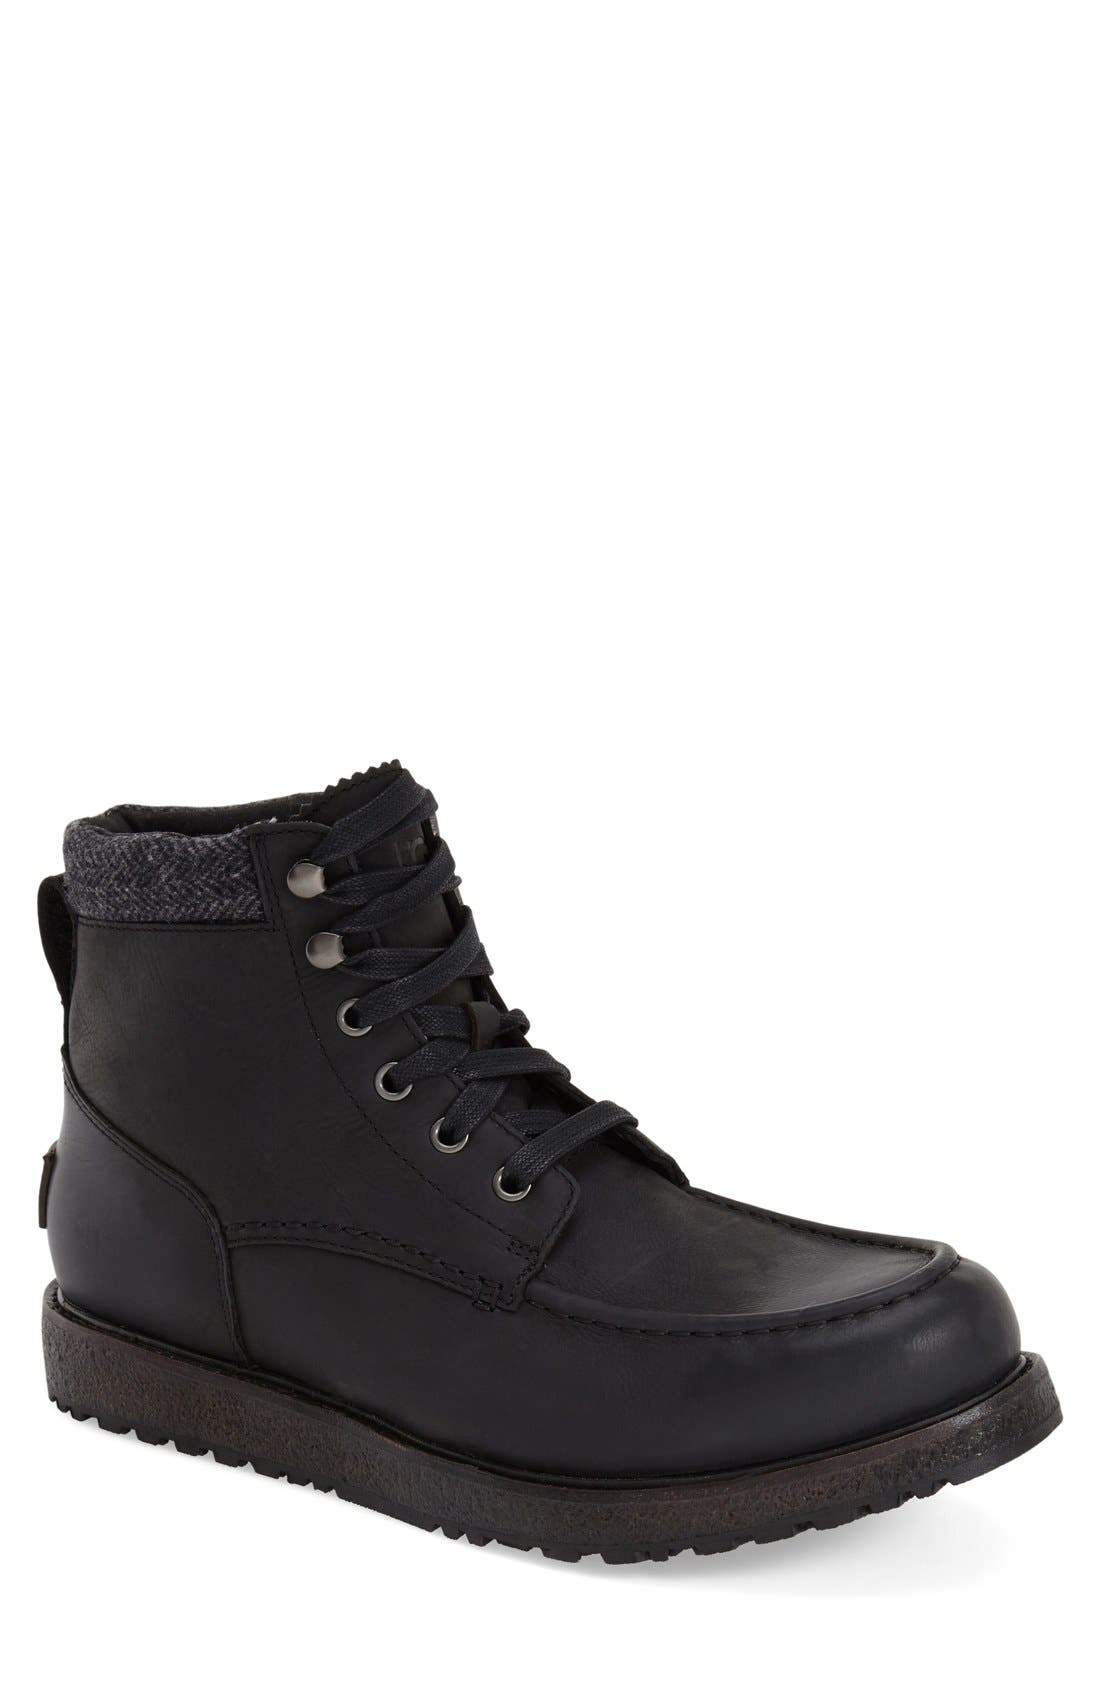 Main Image - UGG® Merrick Moc Toe Boot (Men)